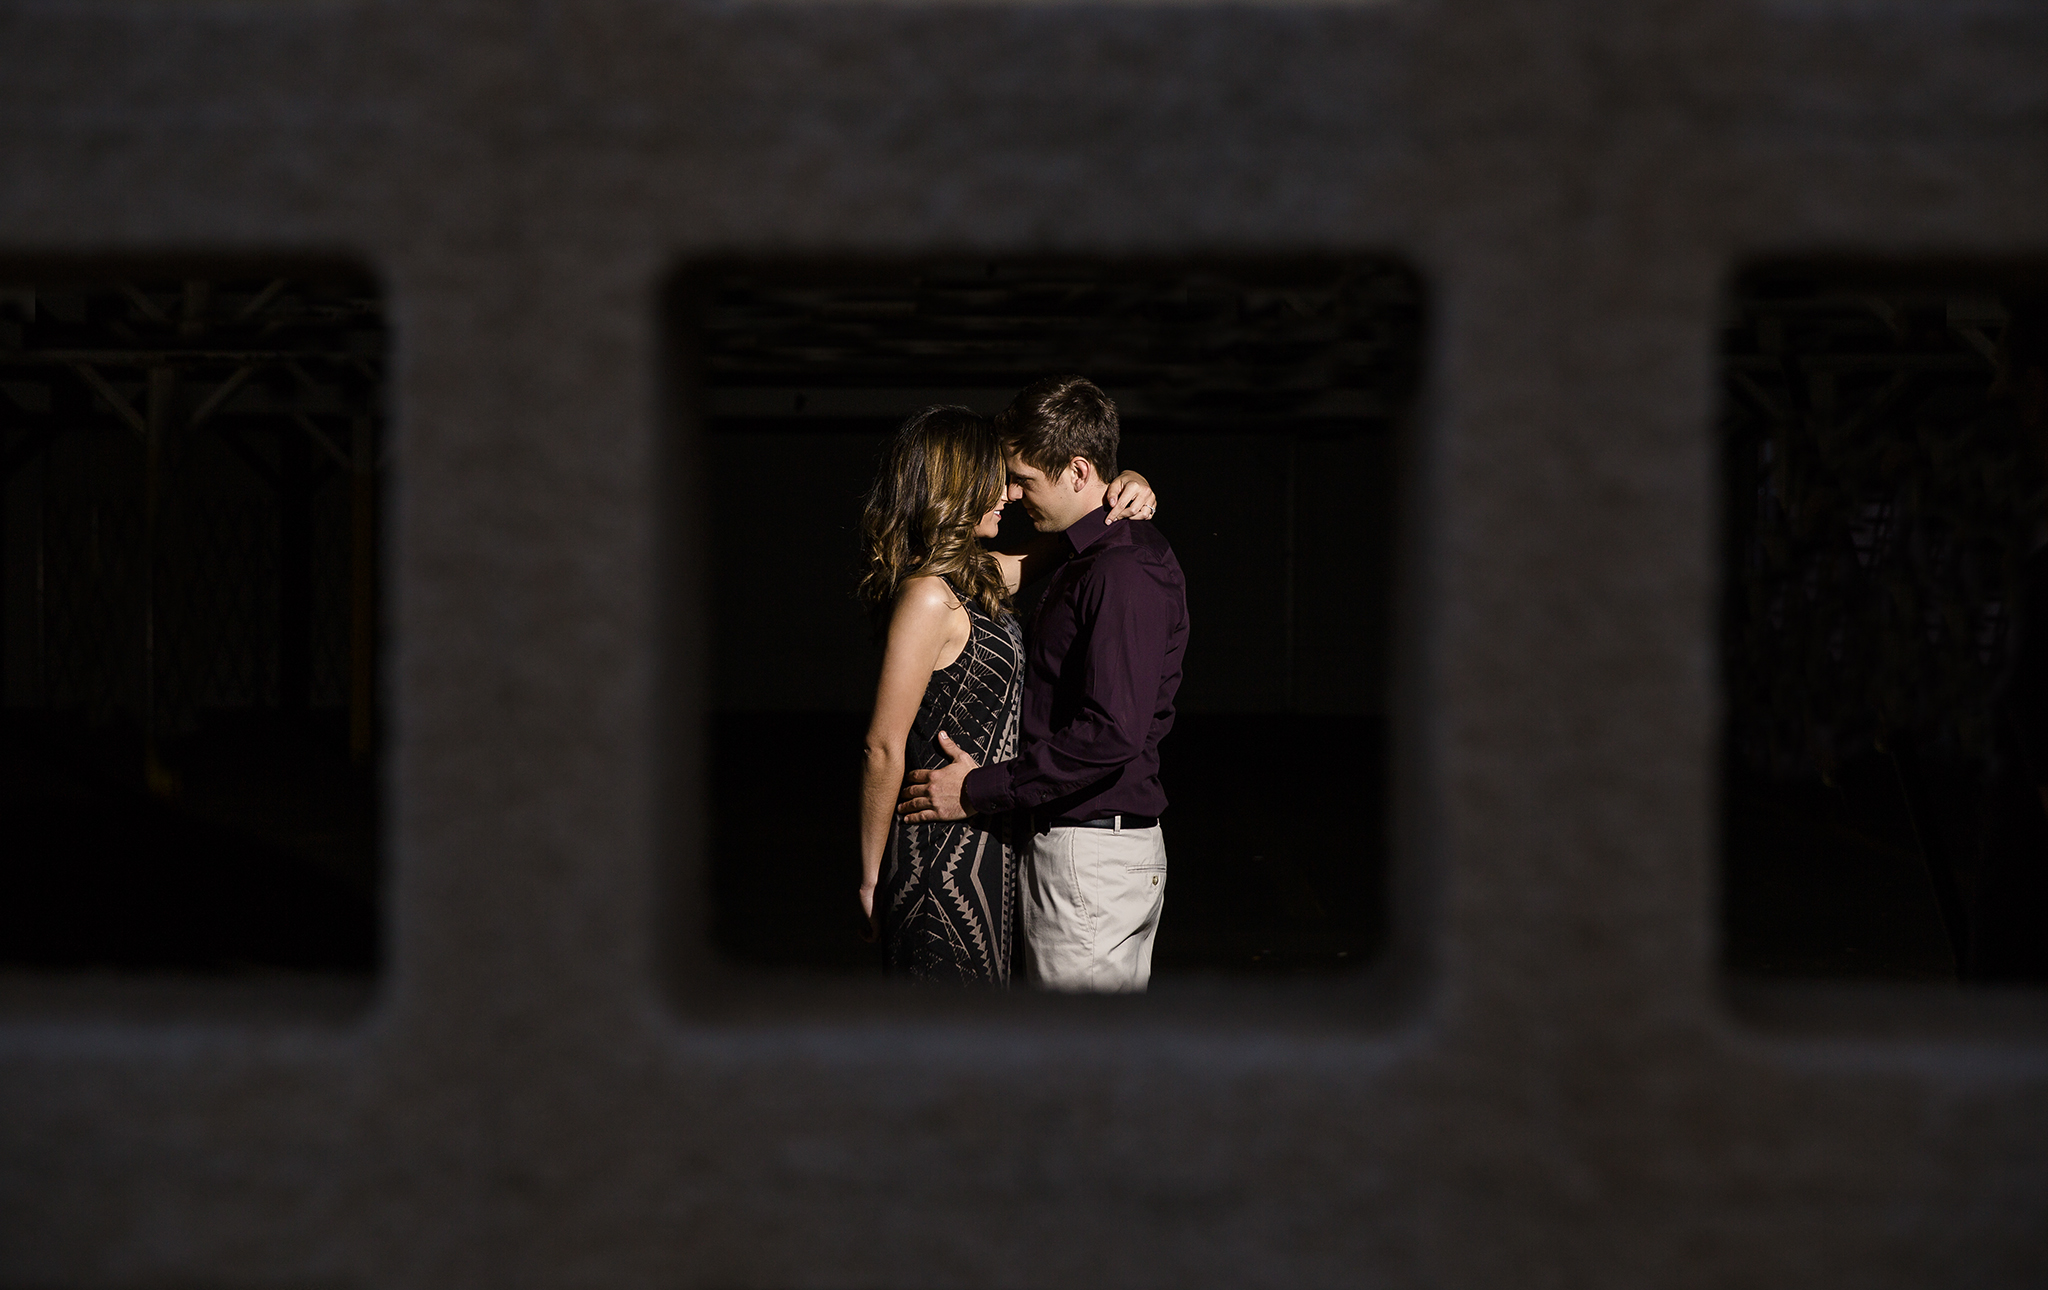 creative framing, shooting through objects, apertures, parking garage architecture, edgy, dramatic, romantic, sexy, kiss me in the dark